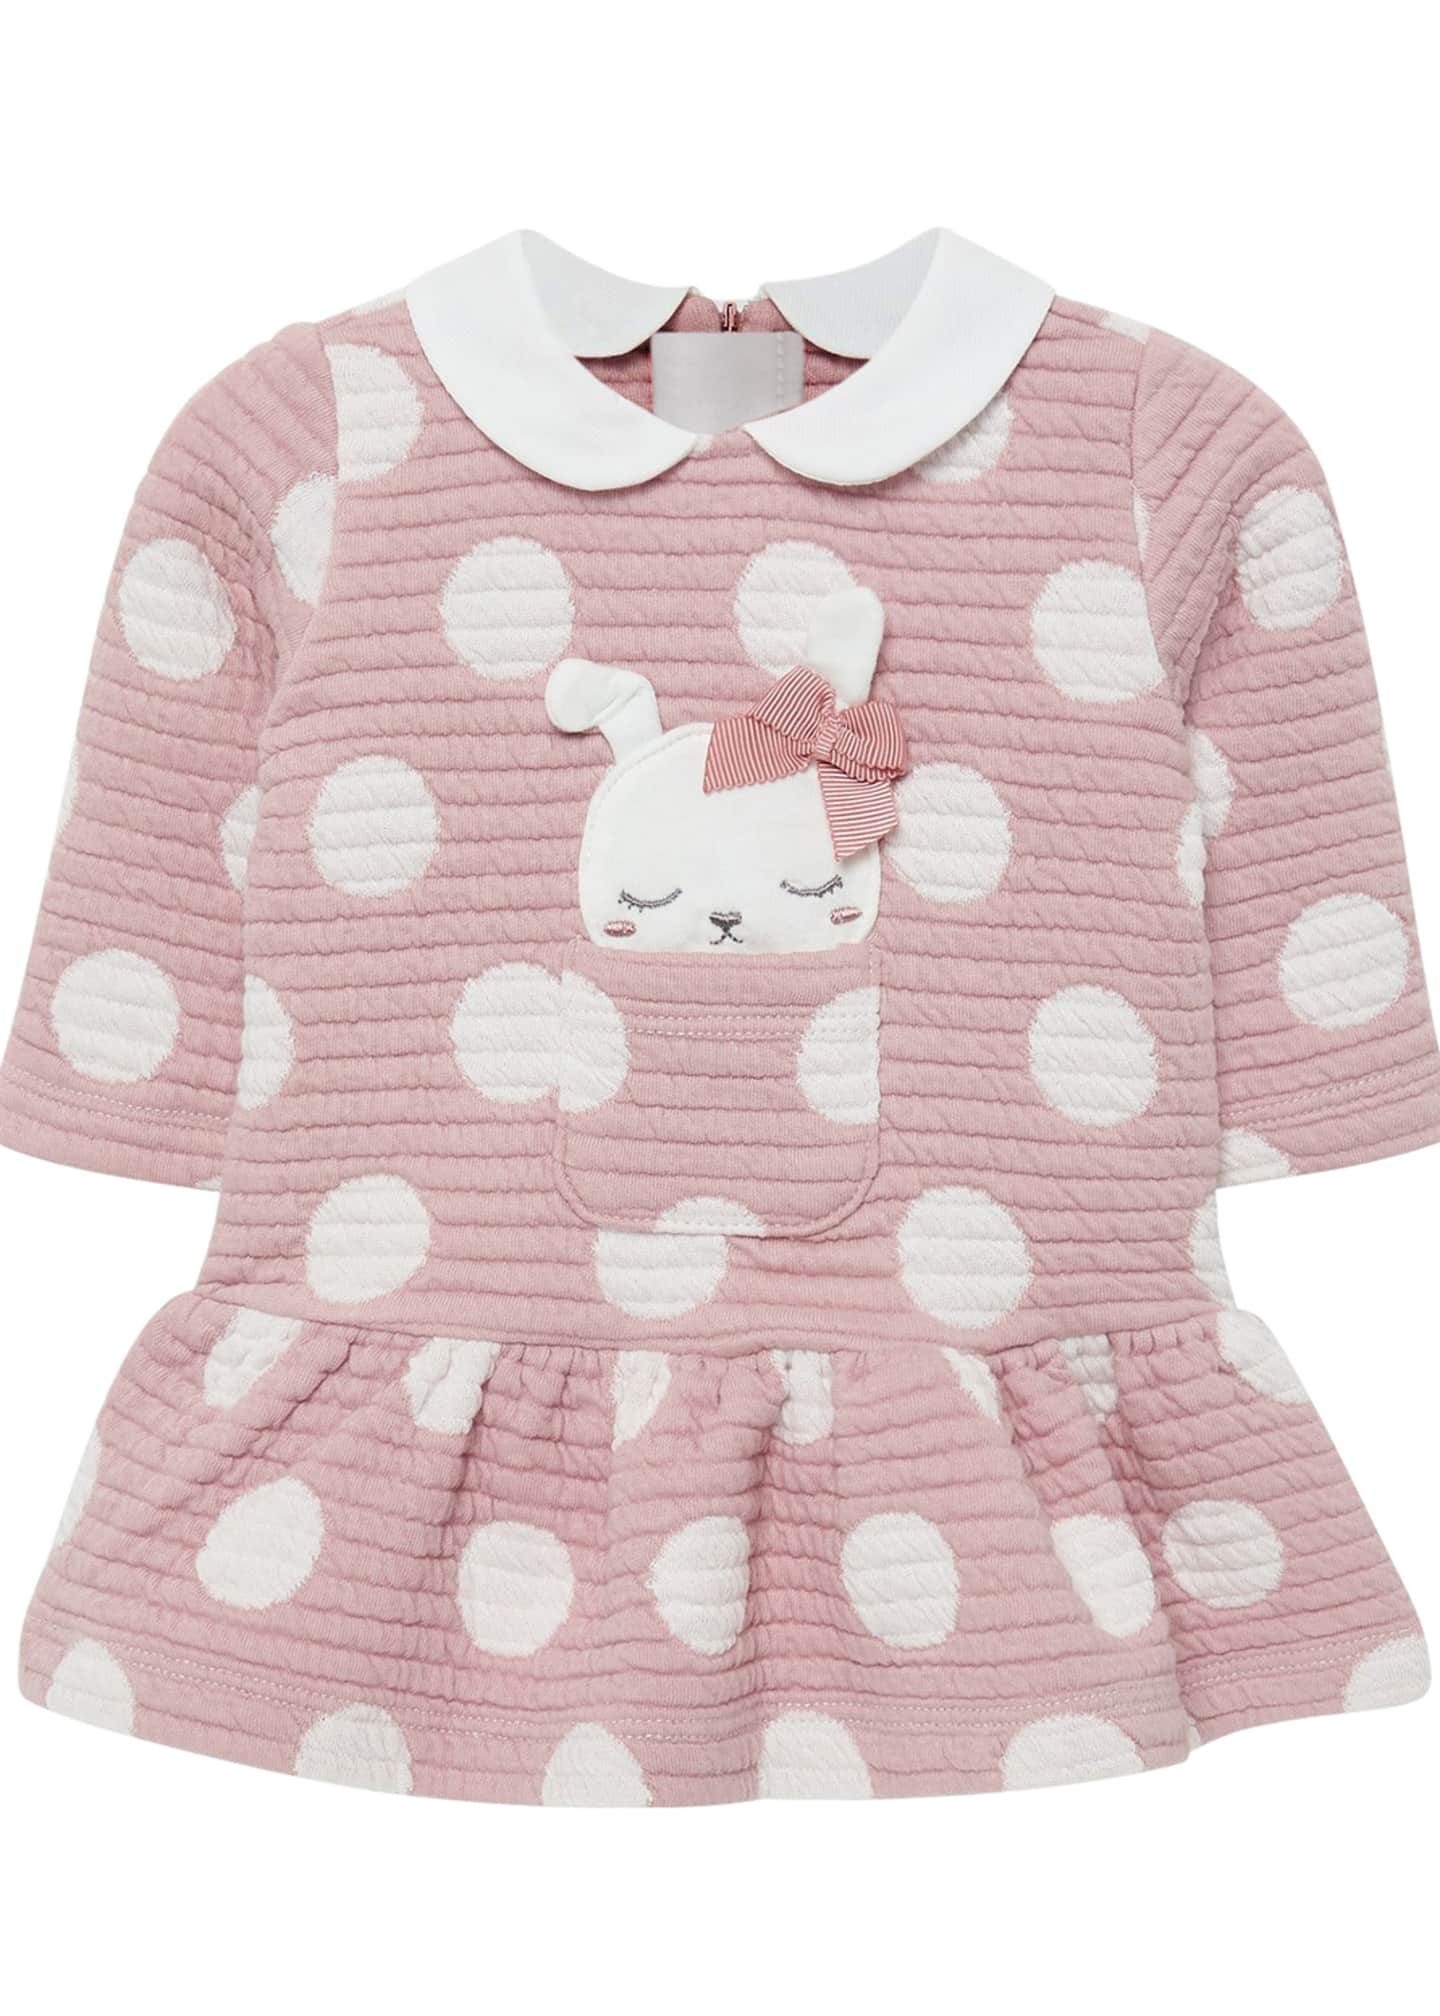 Mayoral Girl's Quilted Polka-Dot Dress w/ Dog Applique,